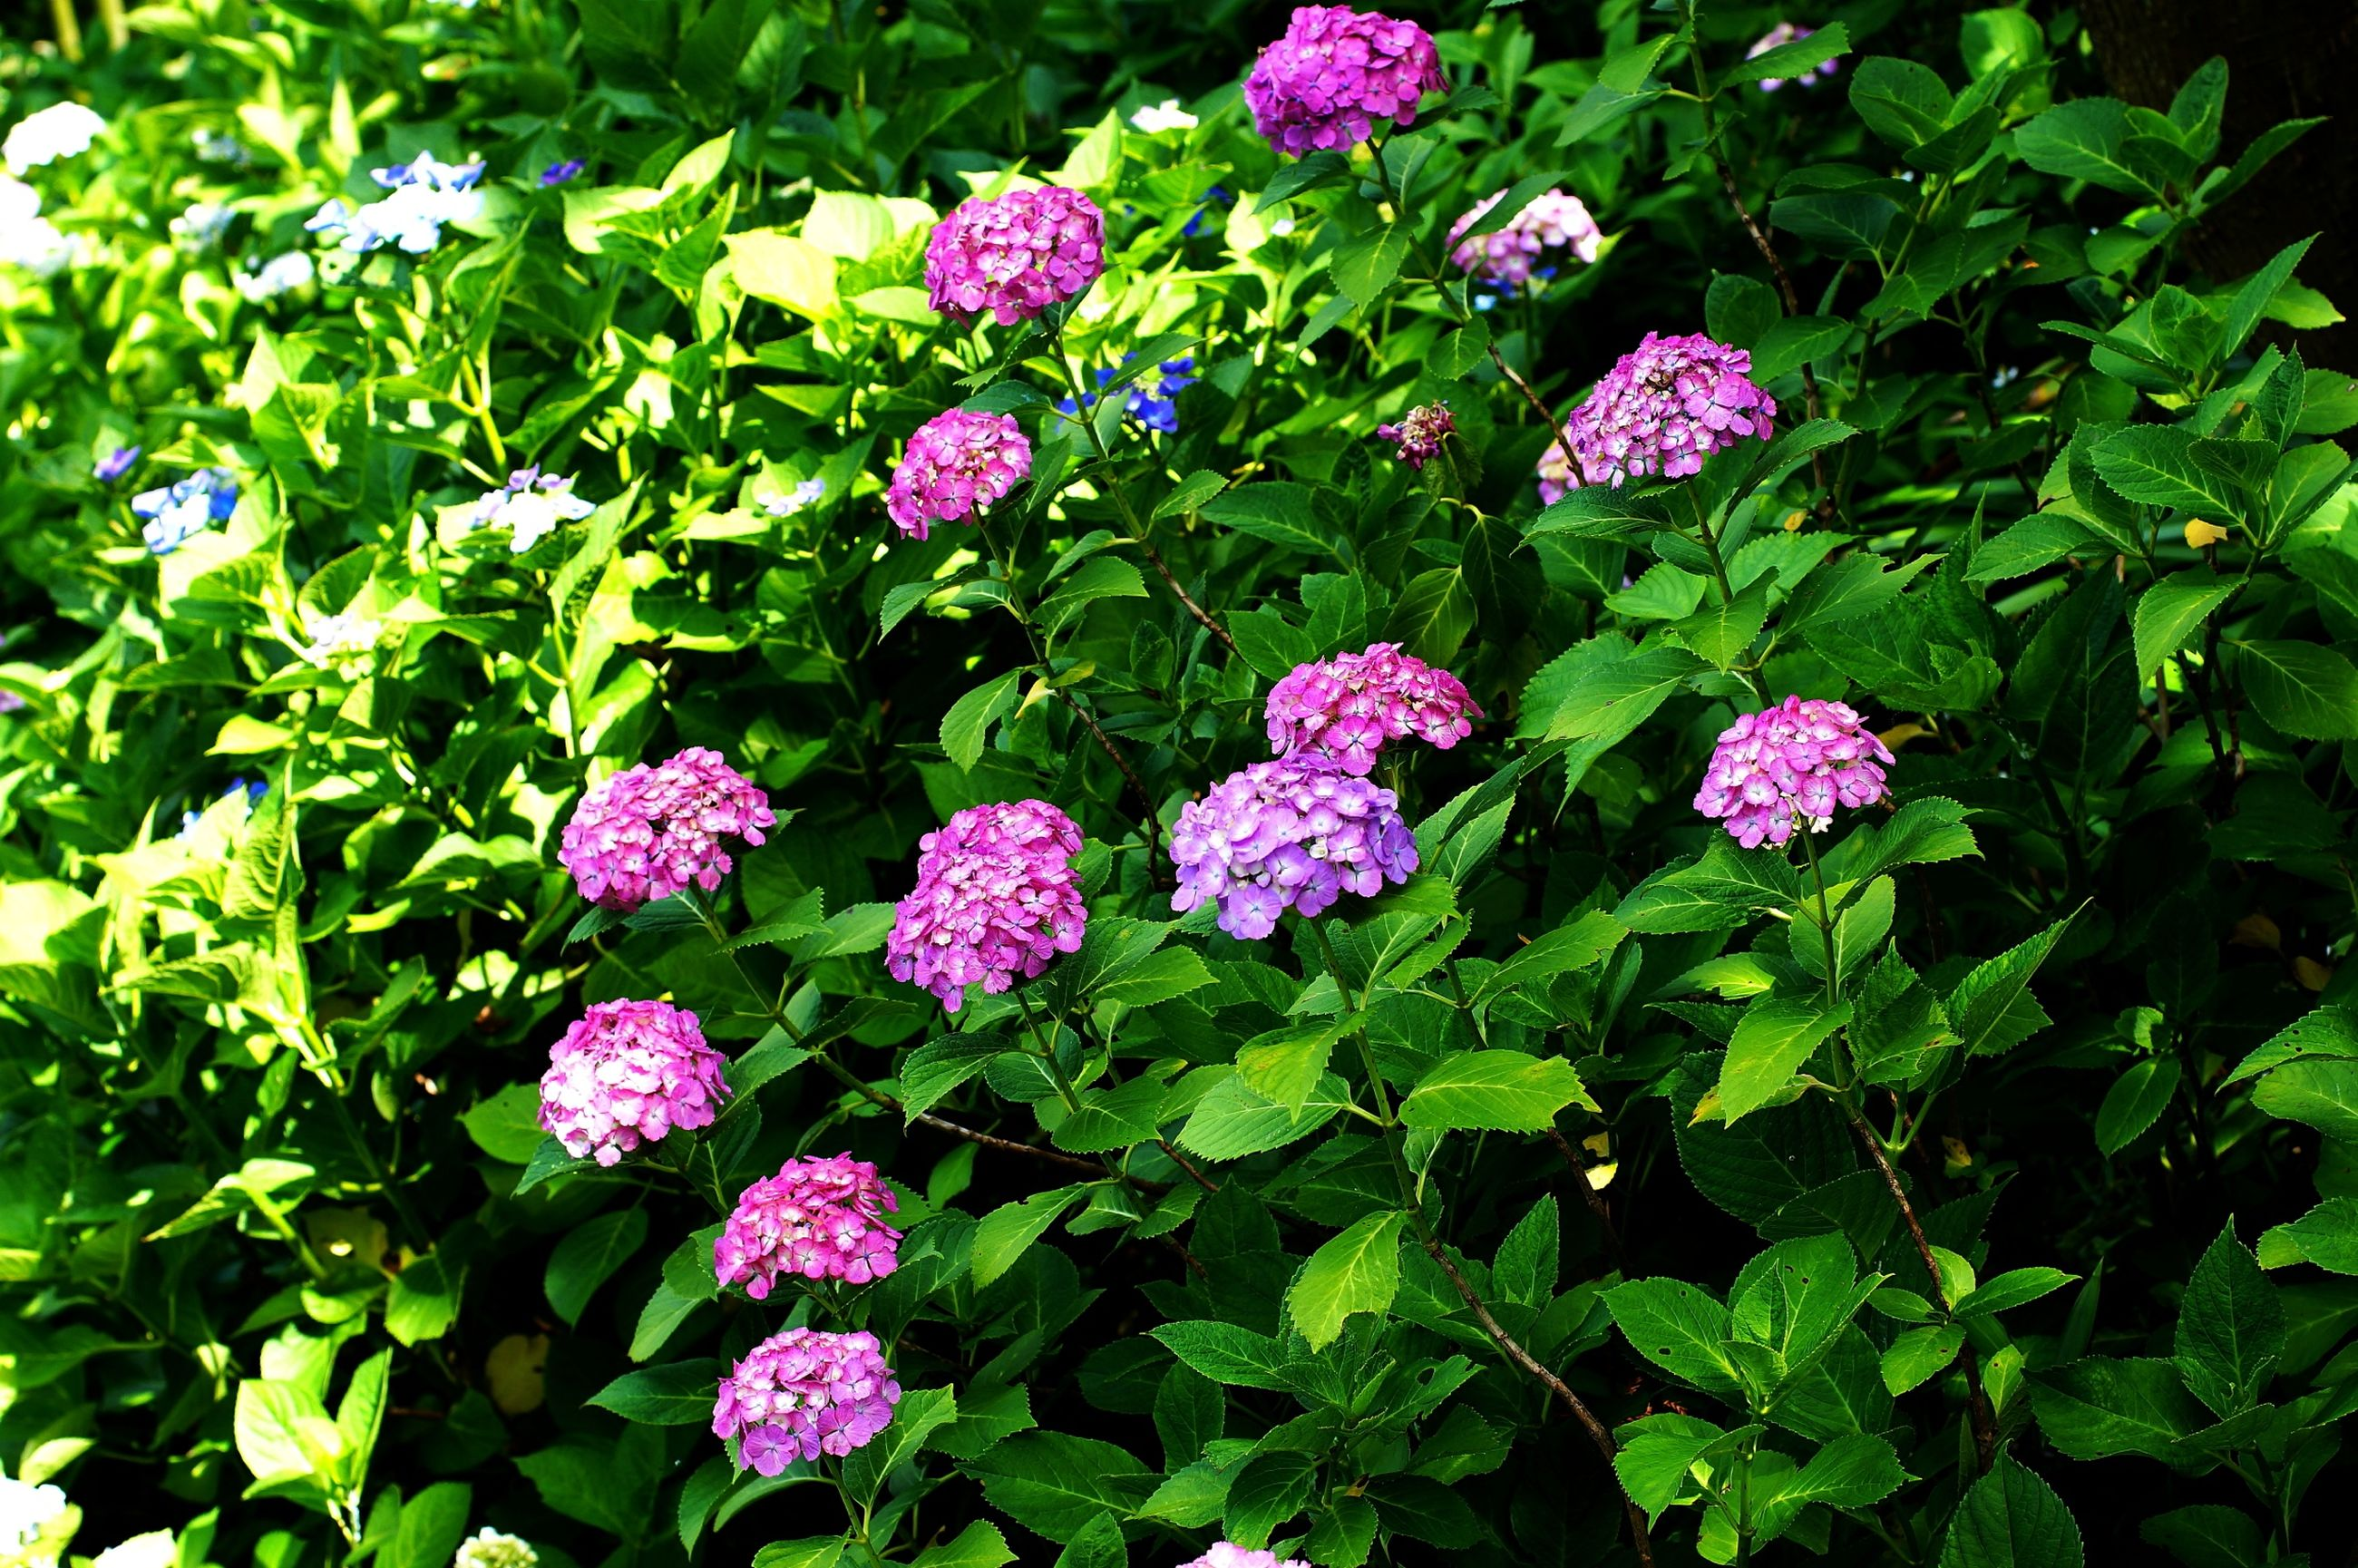 flower, freshness, growth, fragility, beauty in nature, leaf, green color, plant, petal, purple, nature, high angle view, blooming, flower head, field, in bloom, pink color, outdoors, park - man made space, botany